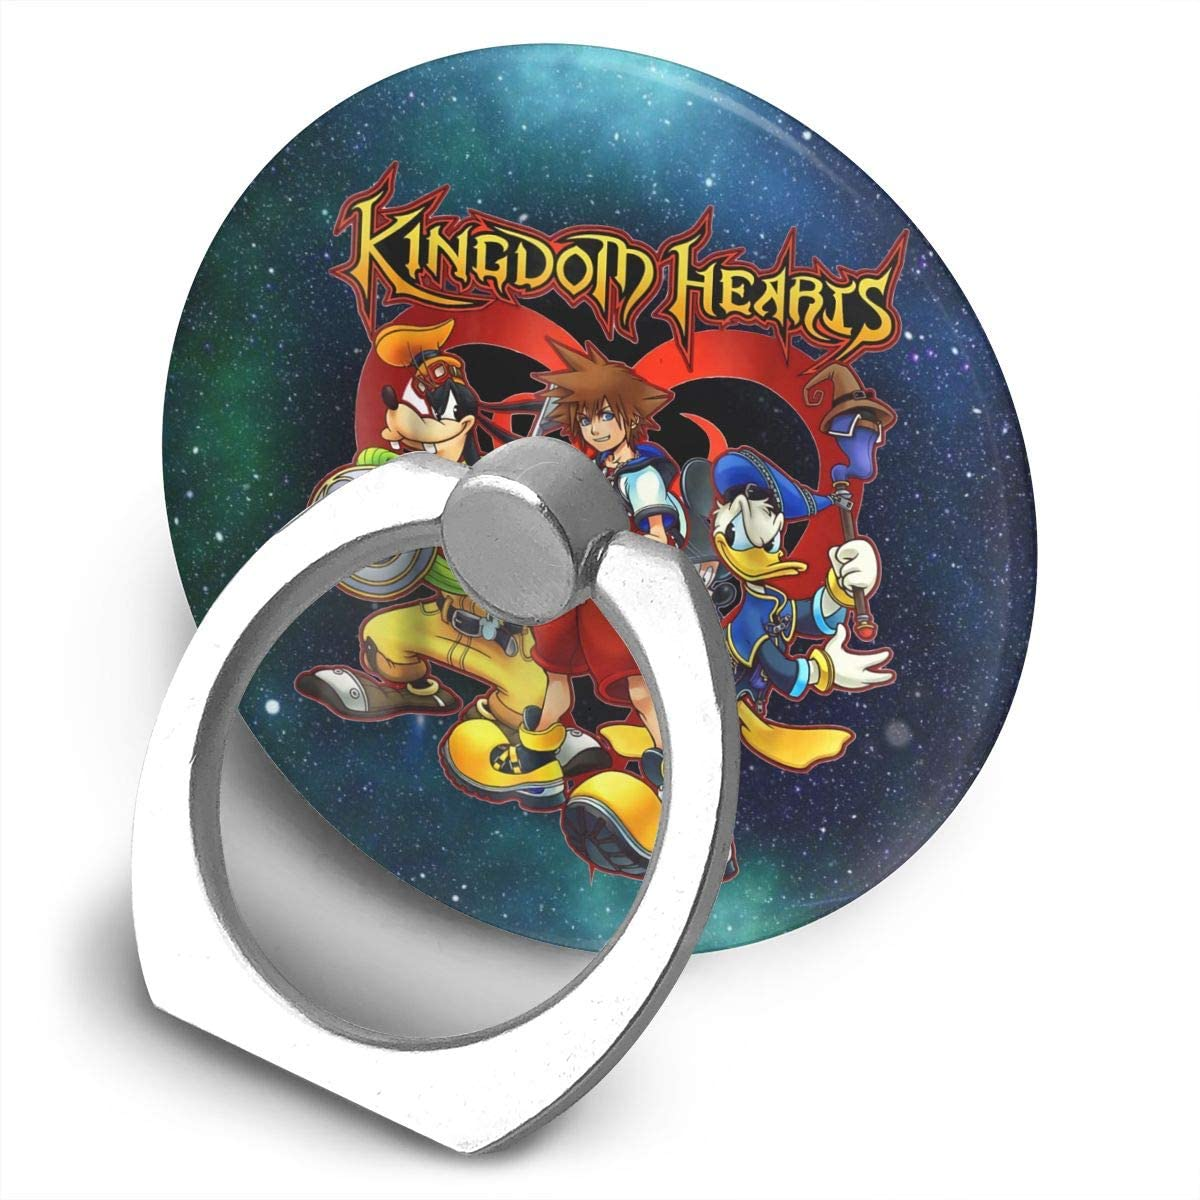 Levoncar Kingdom Hearts Team Ready Phone Stand 360 Rotating Ring Holder for Any Tablets